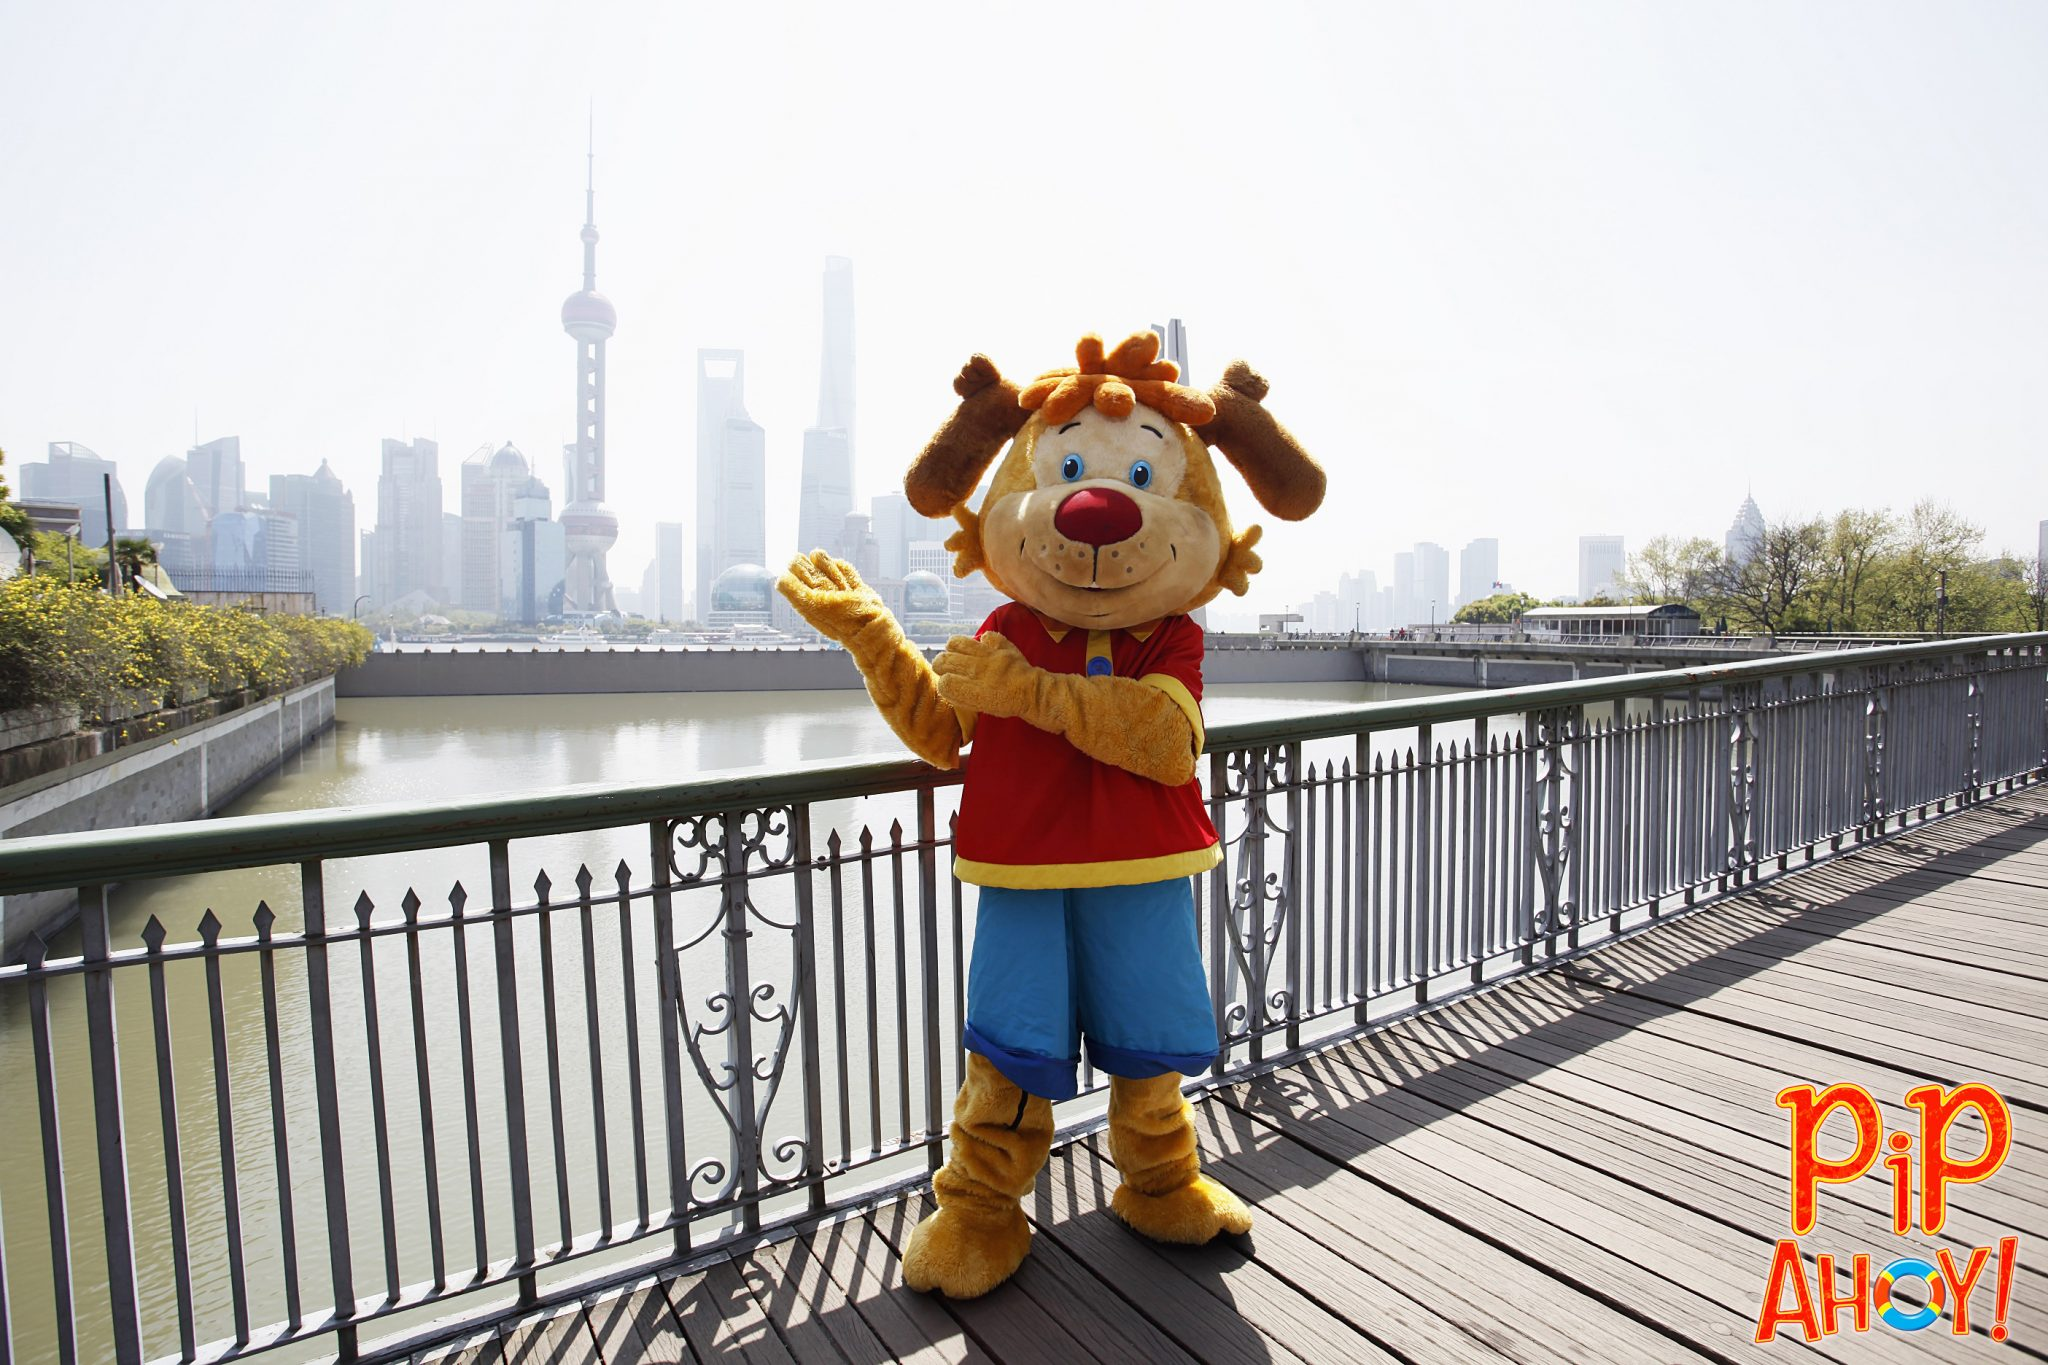 Pip Ahoy in China